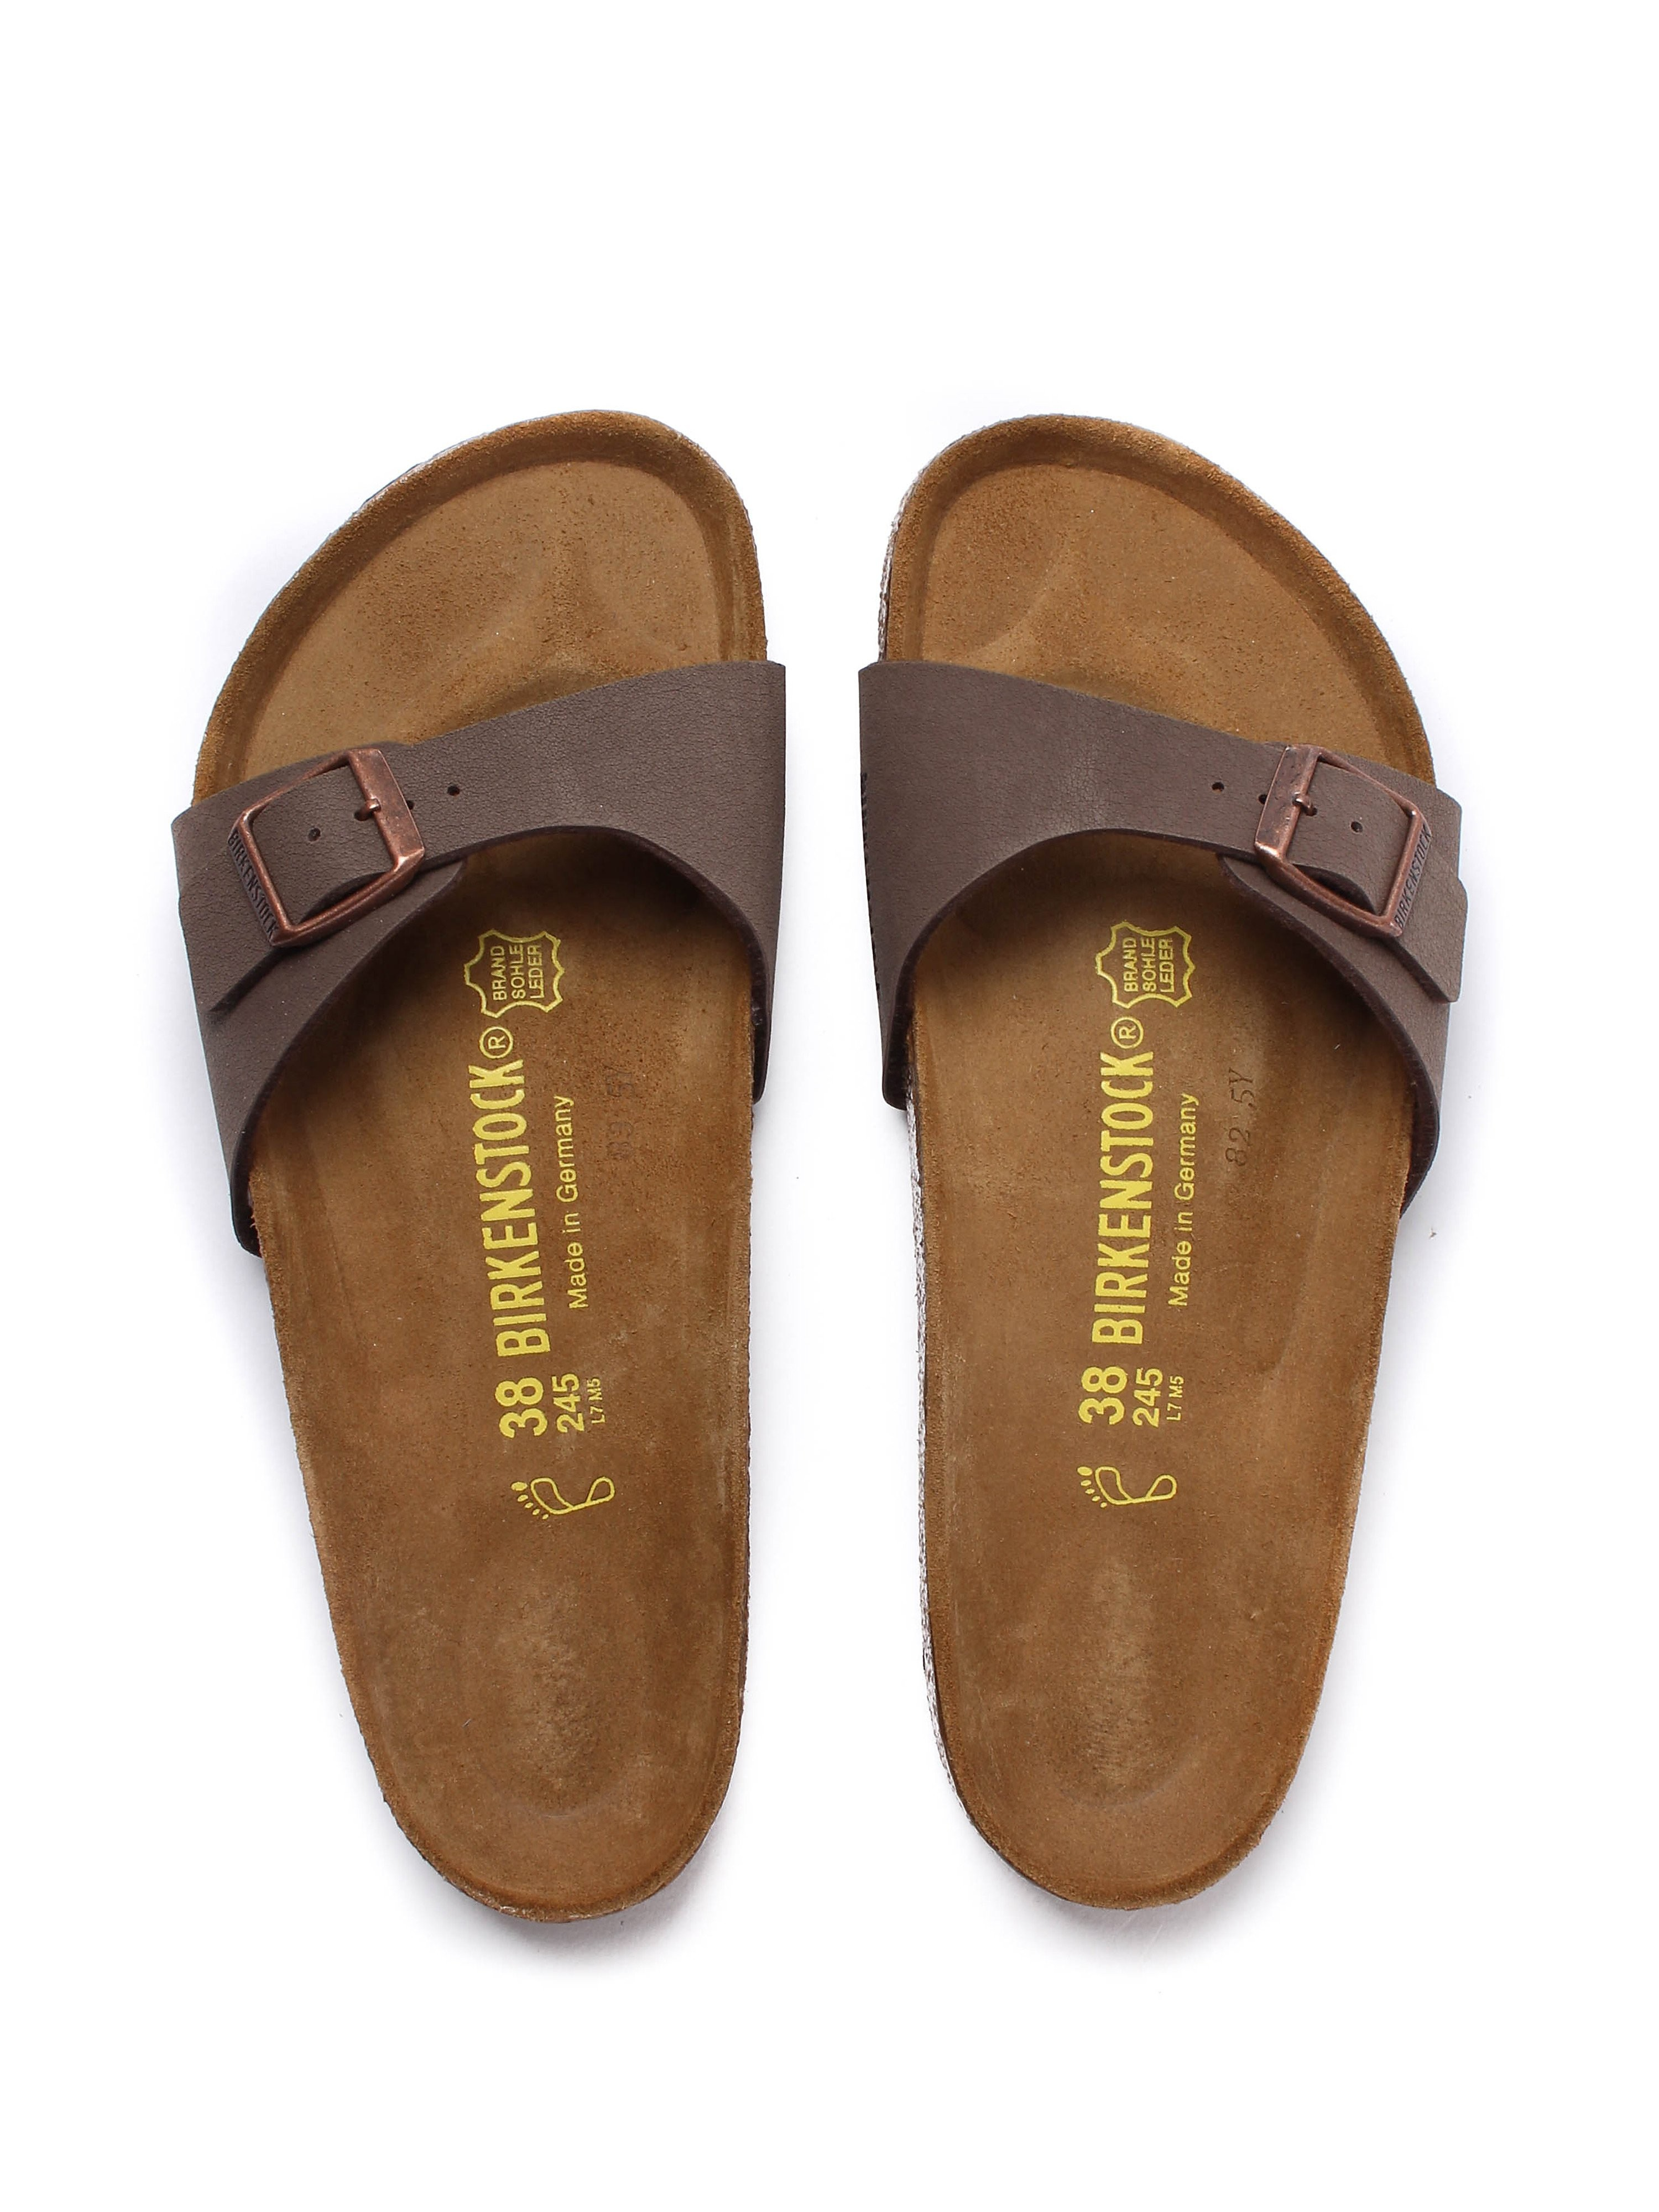 Birkenstock Women's Madrid Buckled Slide Sandal - Mocca Nubuck Leather